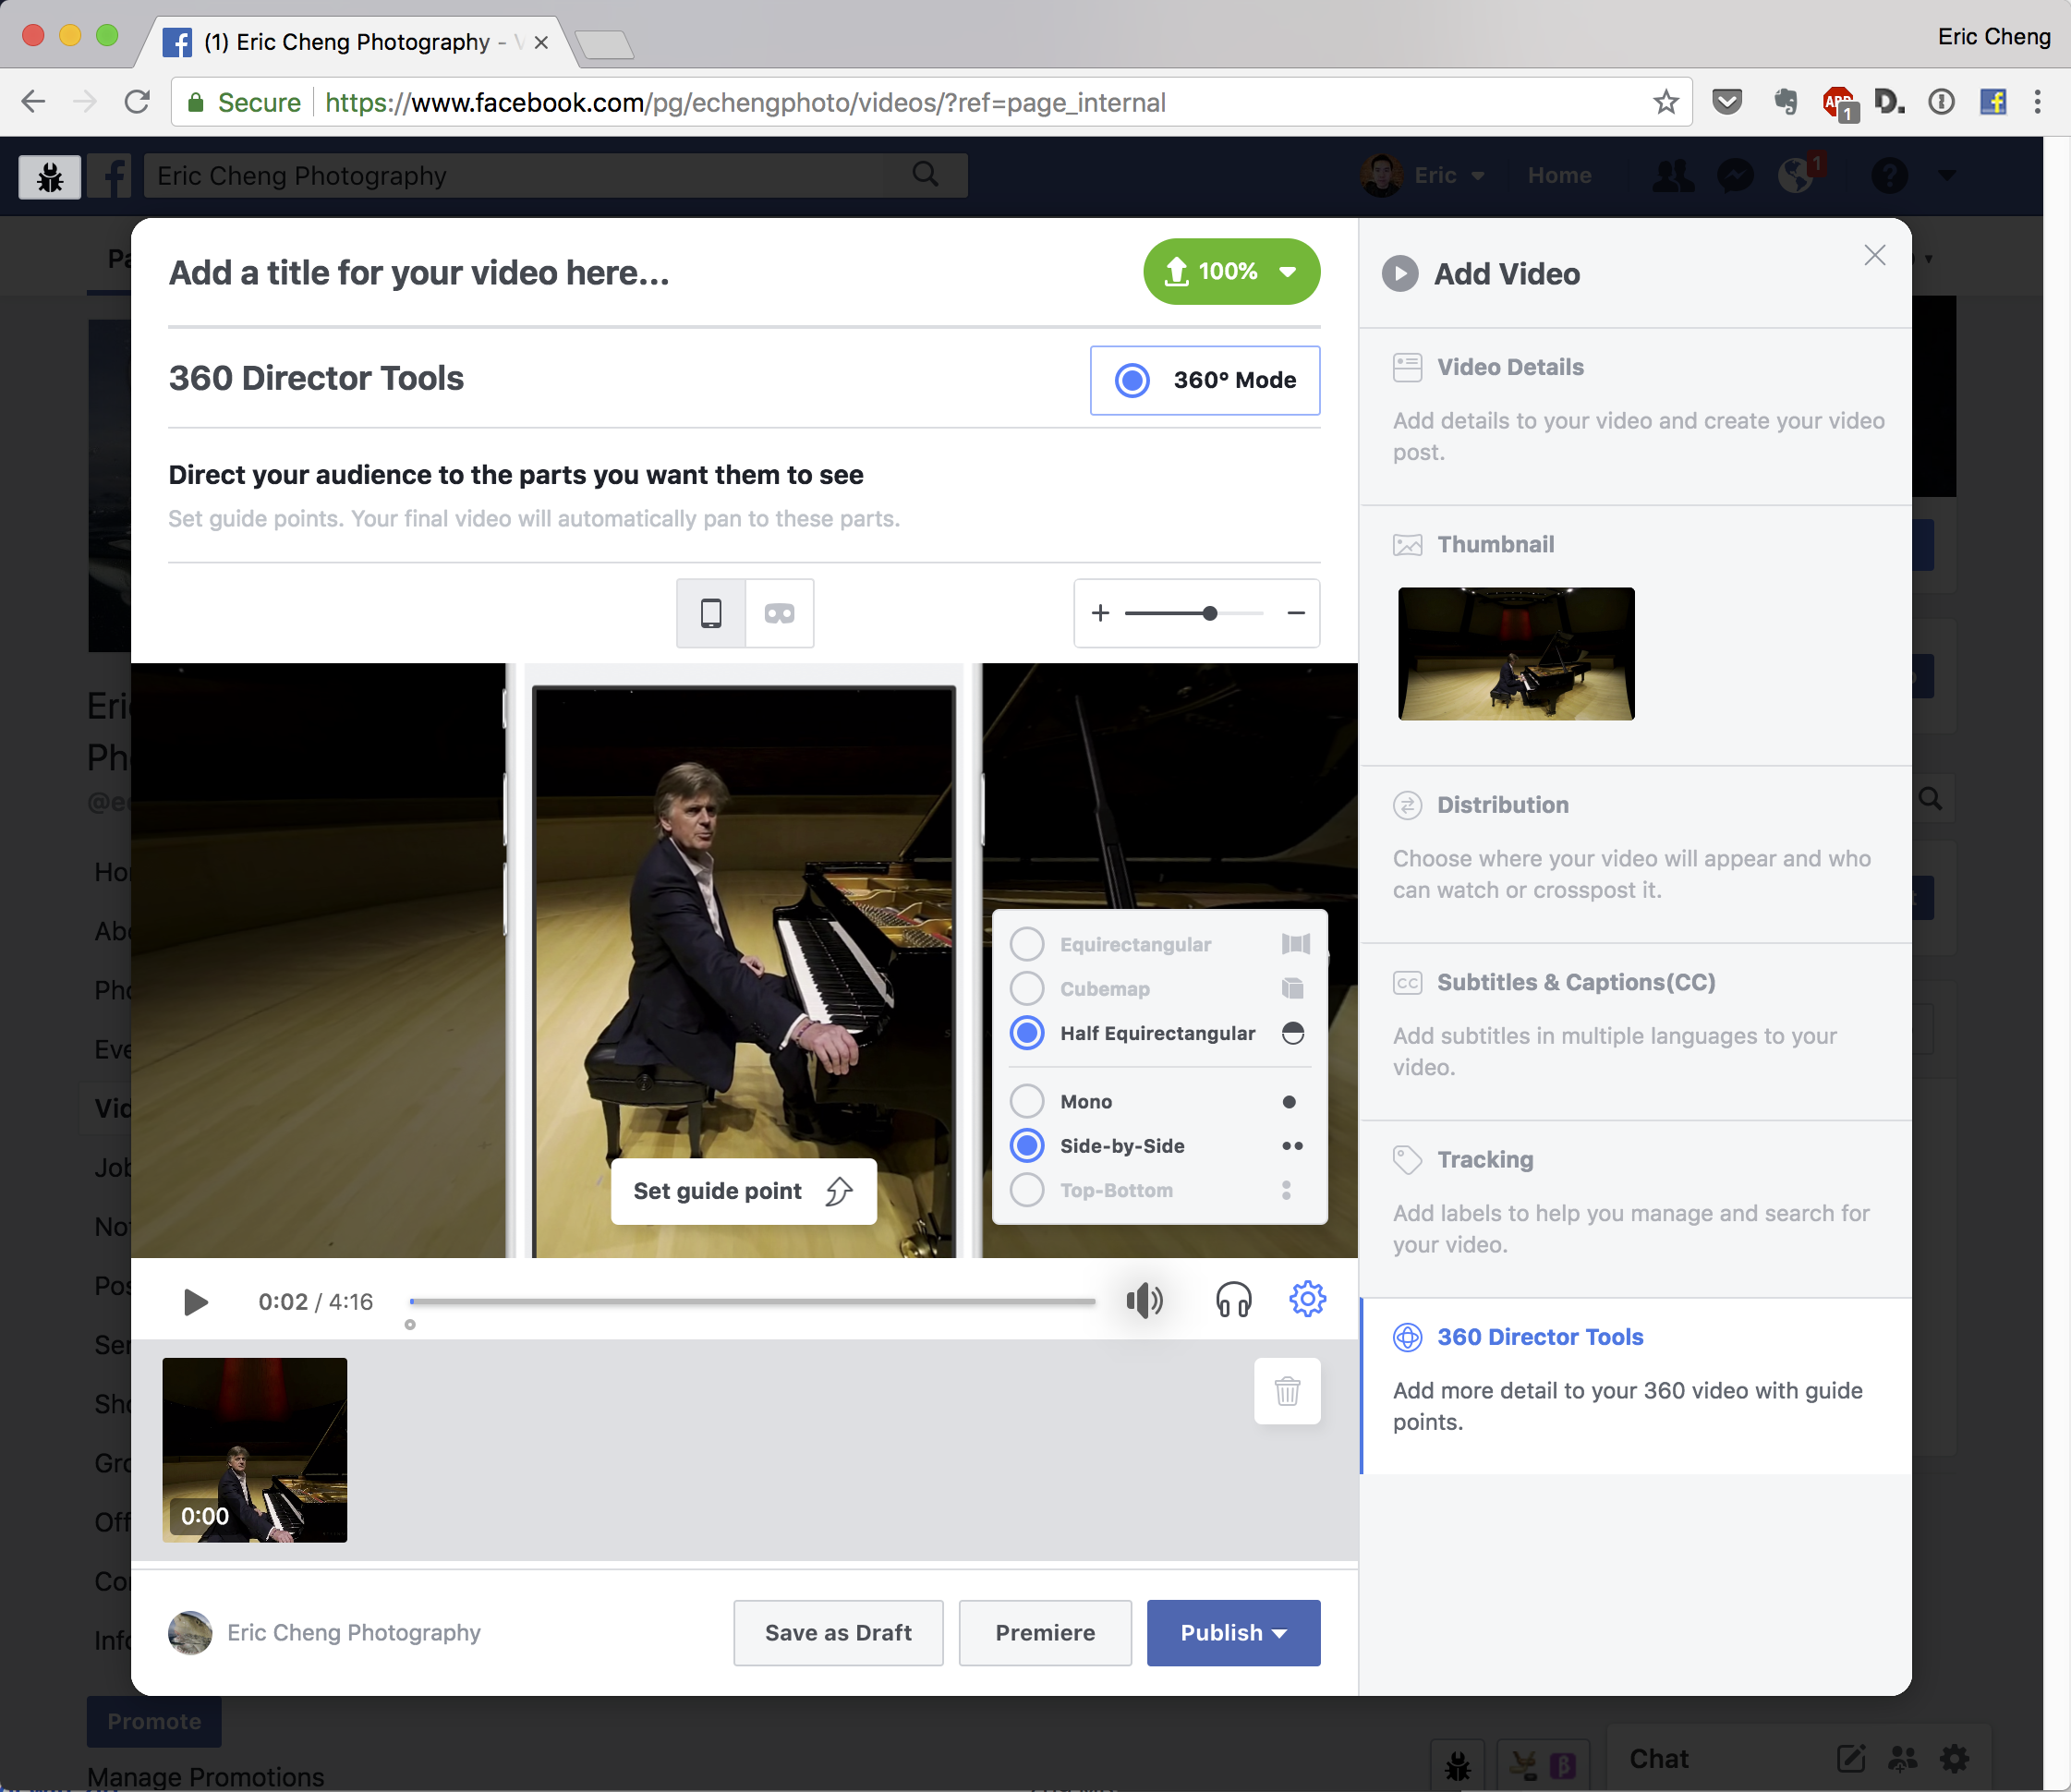 Uploading 3D-180 video to a Facebook page is straightforward.